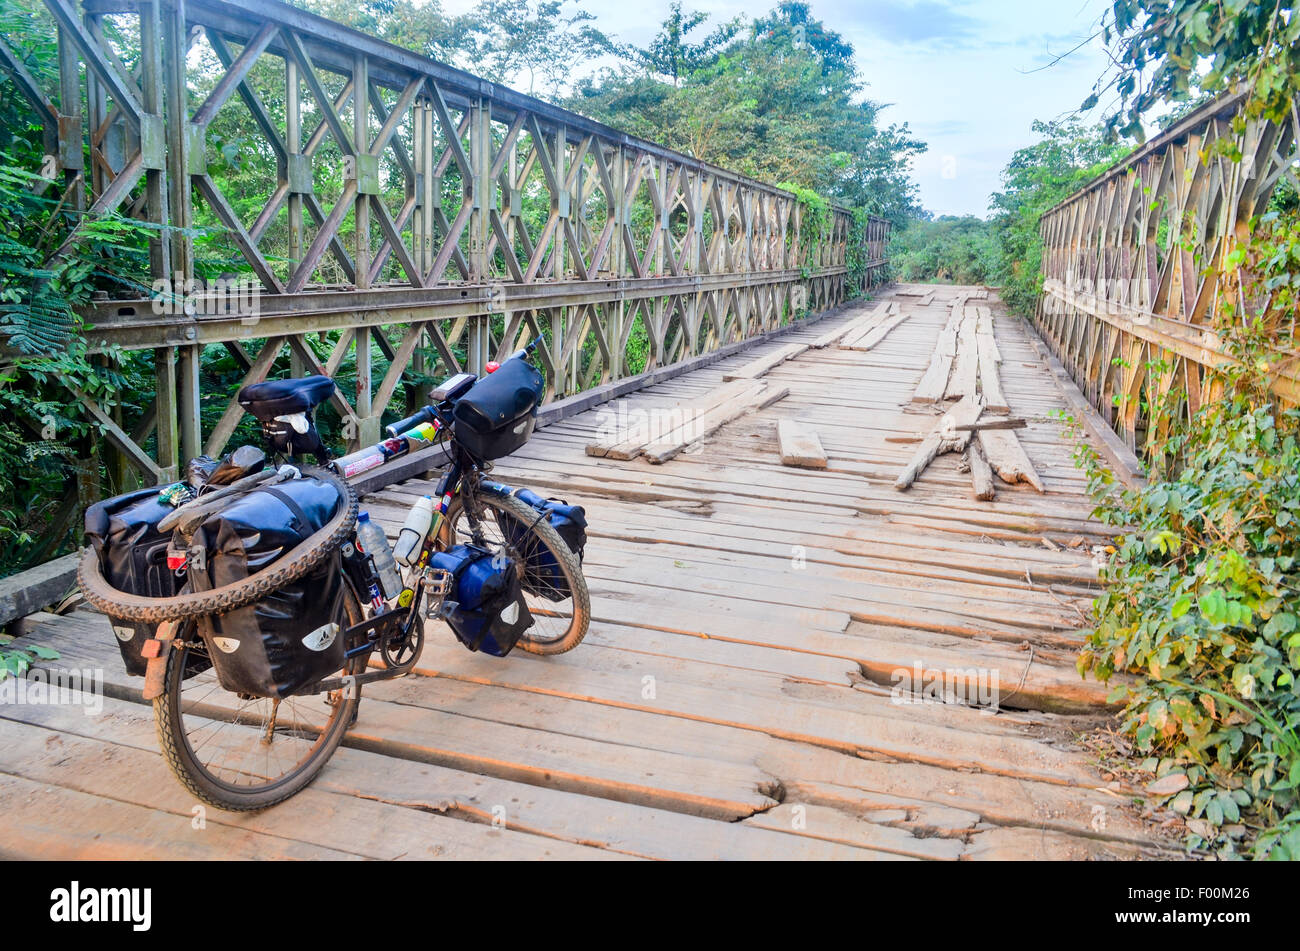 Bicycle touring in Ghana and cycling over an old colonial bridge - Stock Image